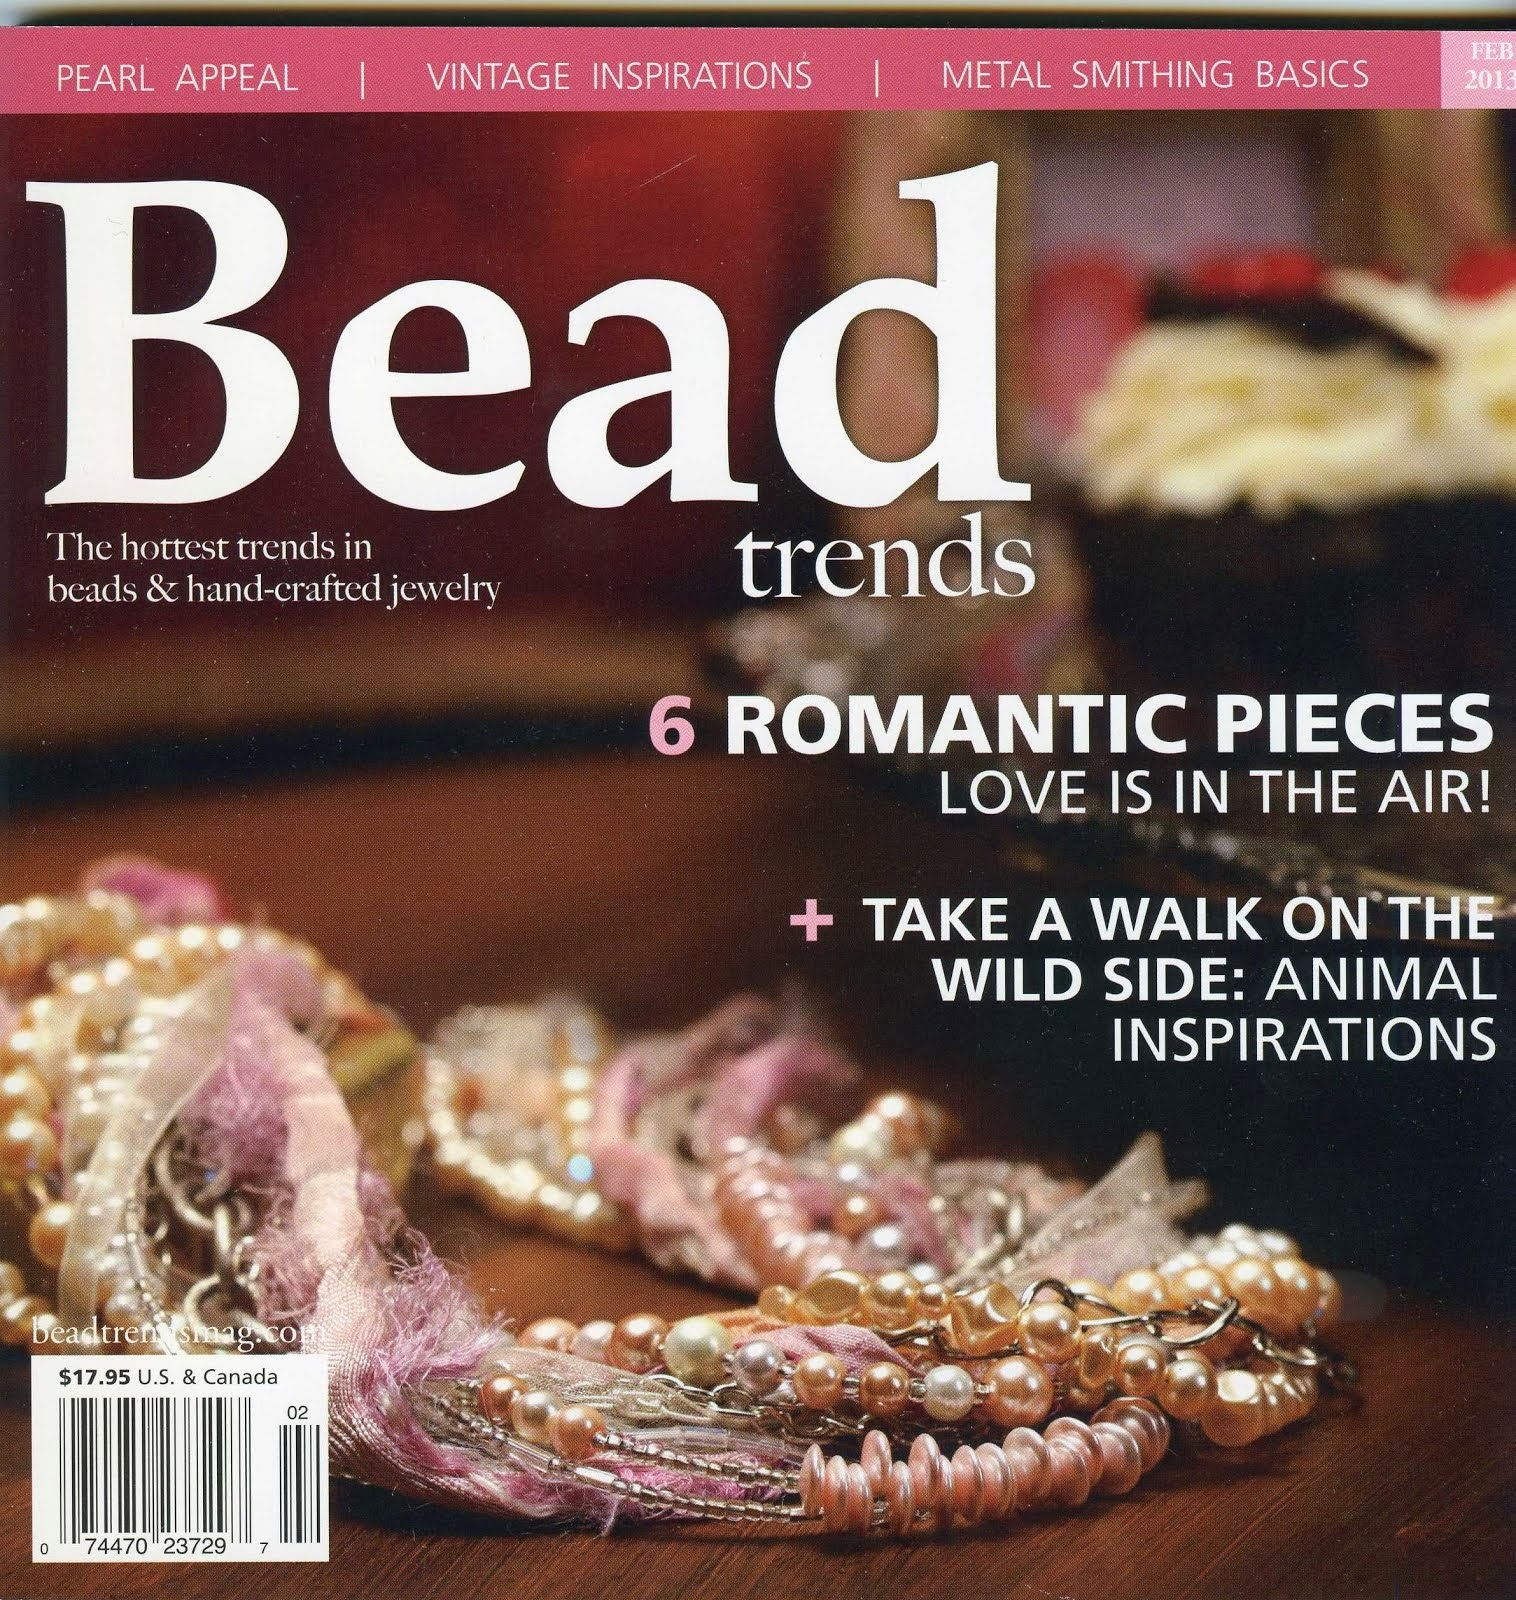 Bead Trends February 2013 Issue